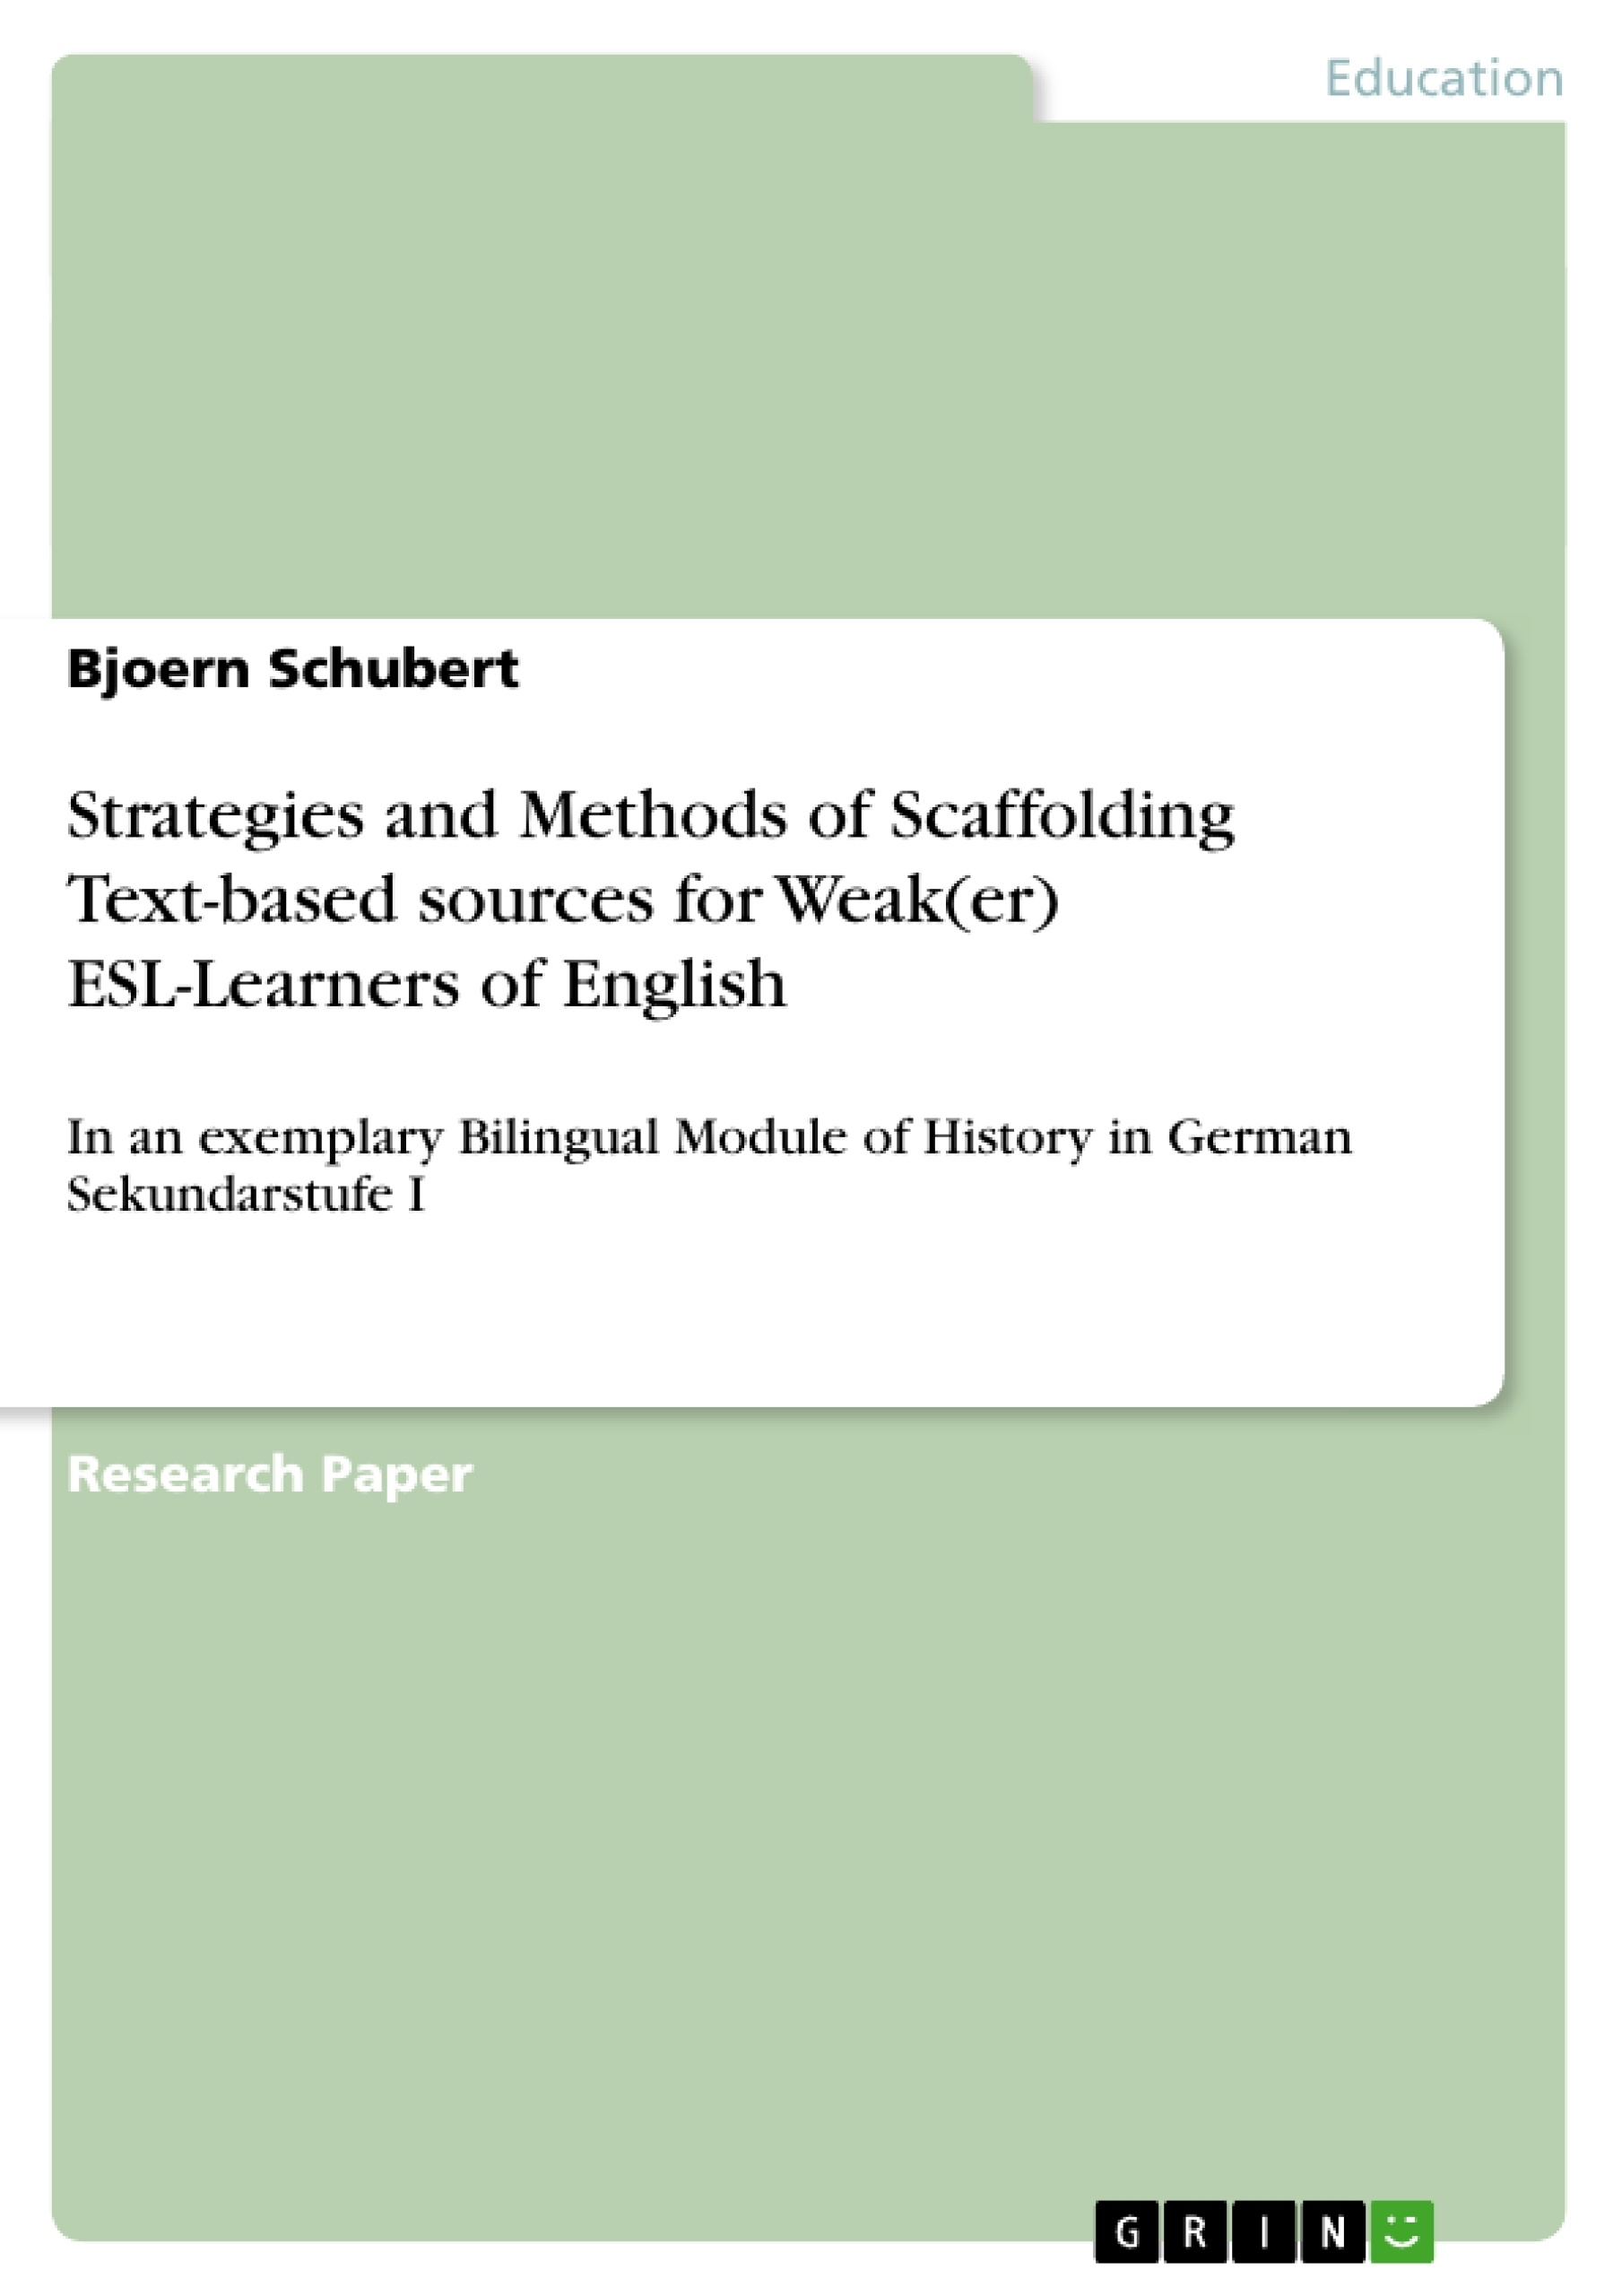 Title: Strategies and Methods of Scaffolding Text-based sources for Weak(er) ESL-Learners of English